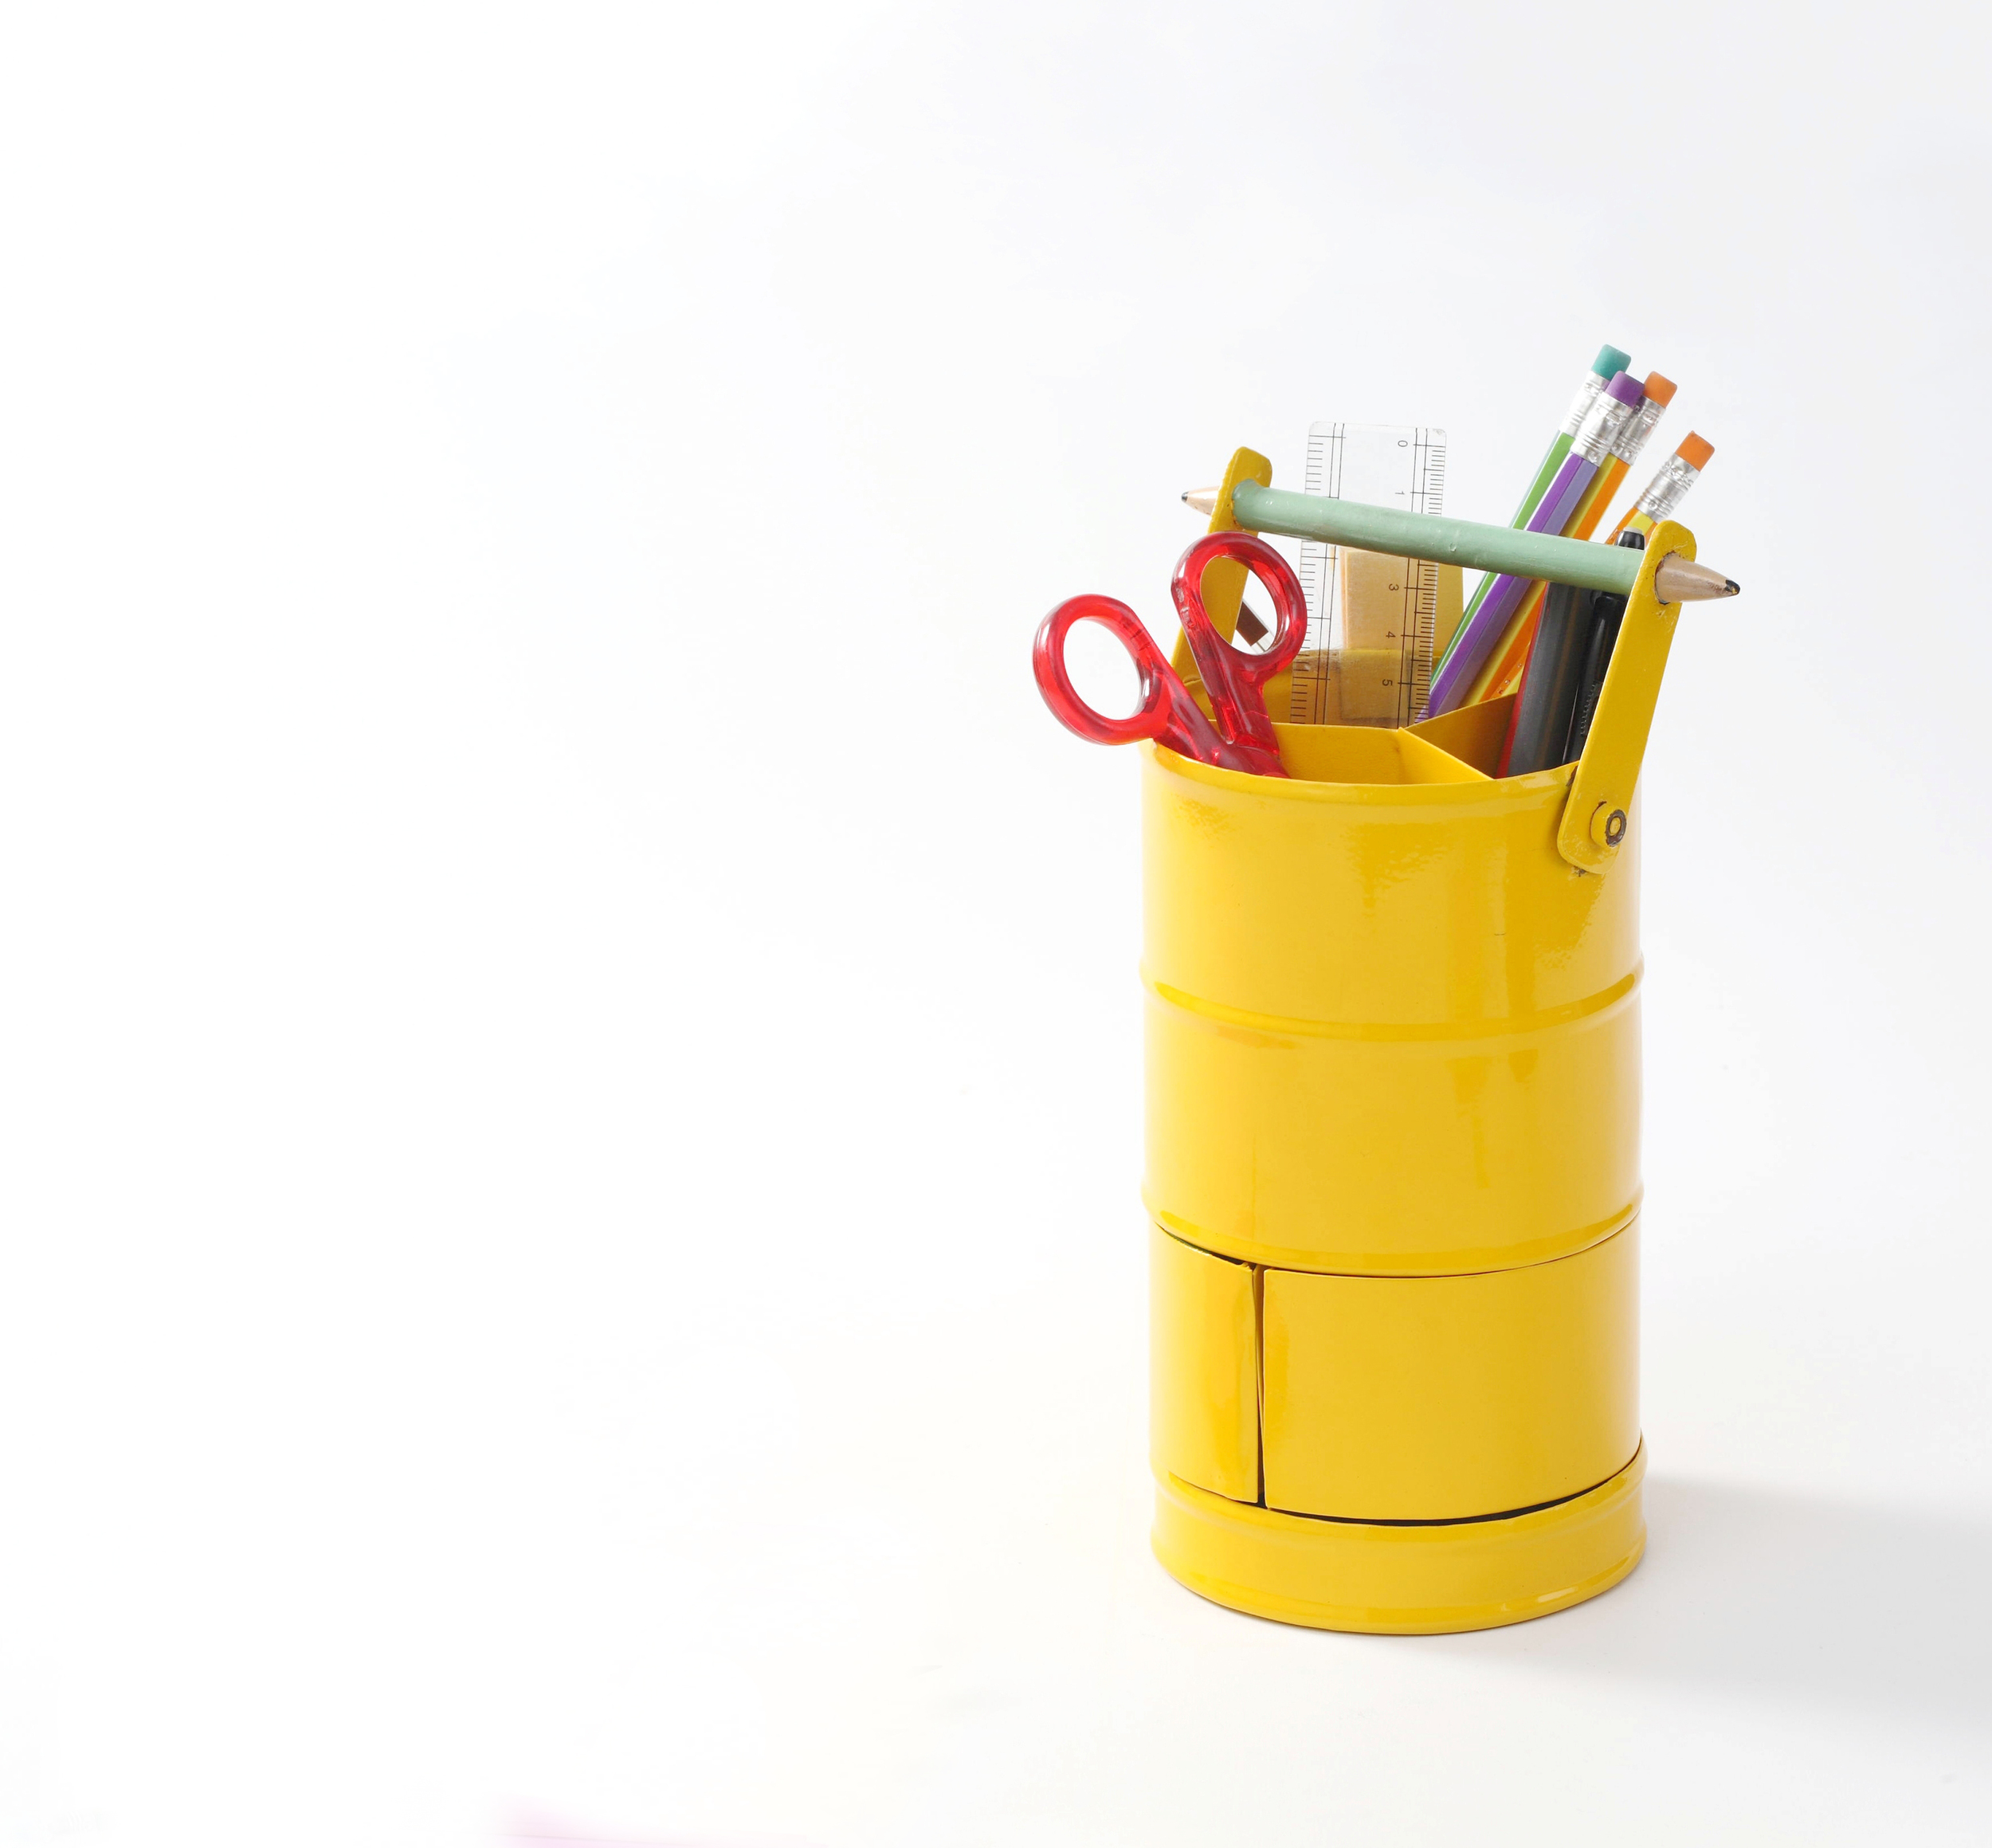 A sunny stackable to brighten up the desktop landscape with fun